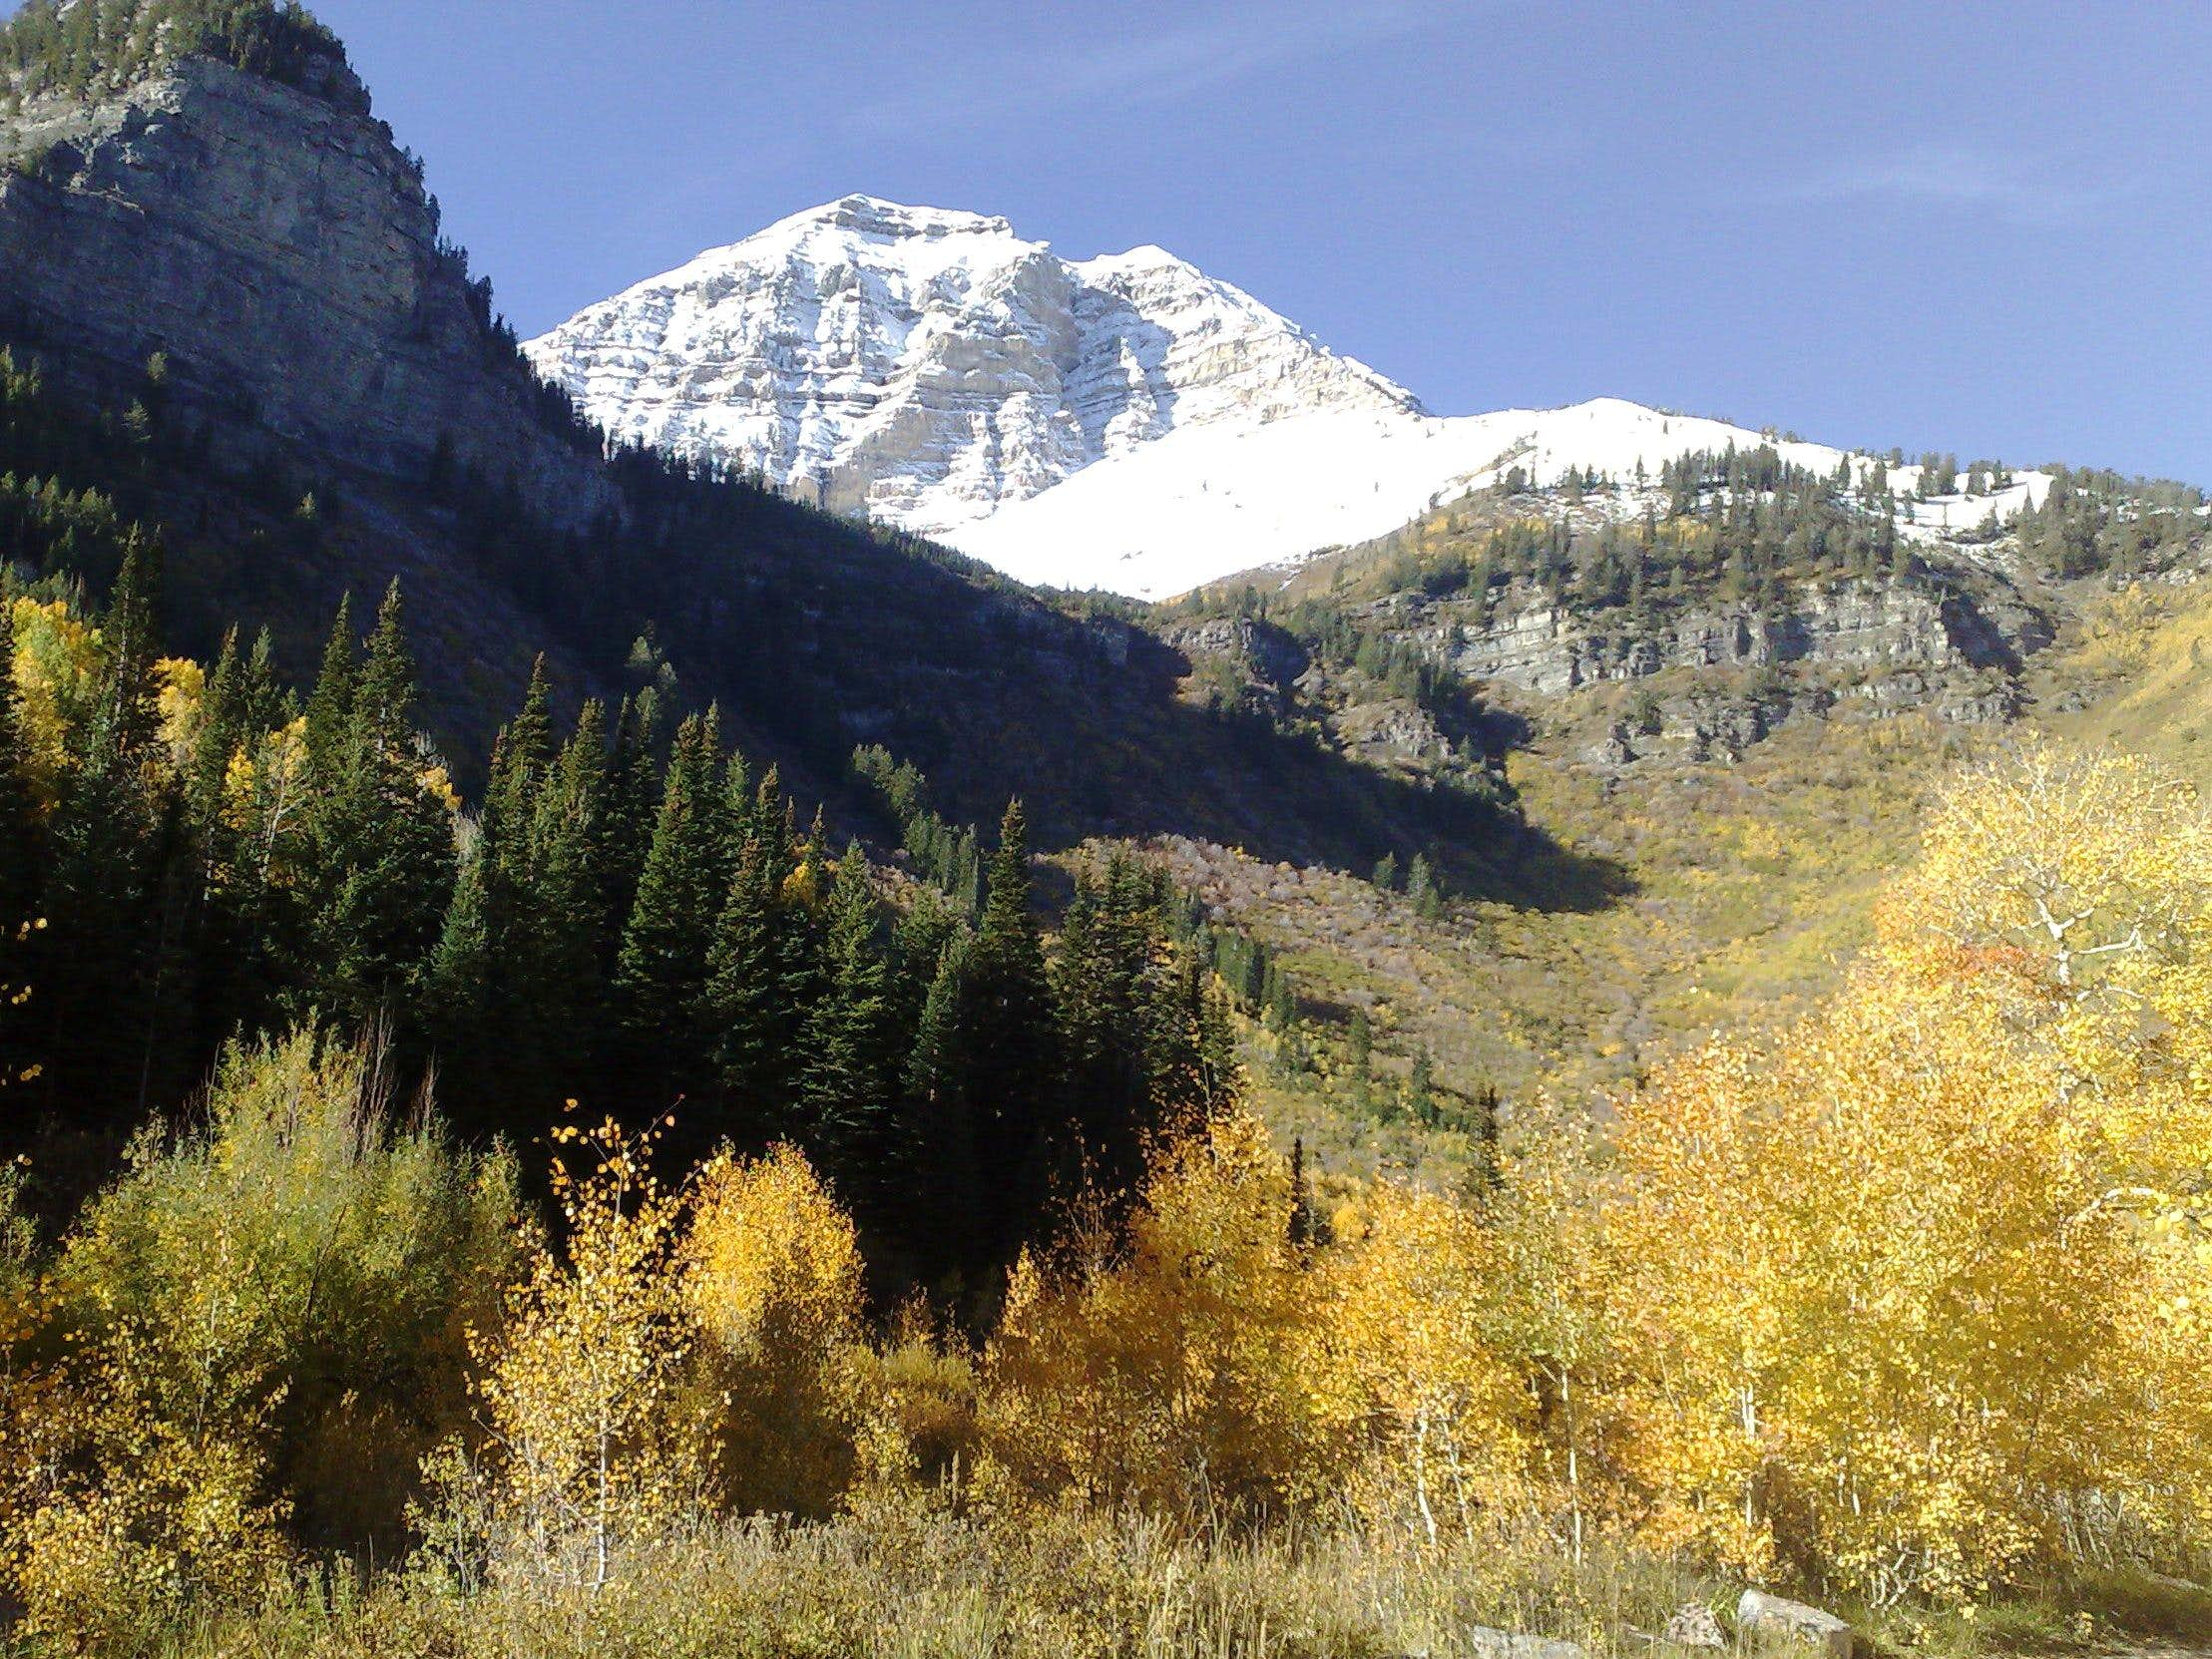 Northern peak of Mt. Timpanogos elev. 11,441 ft